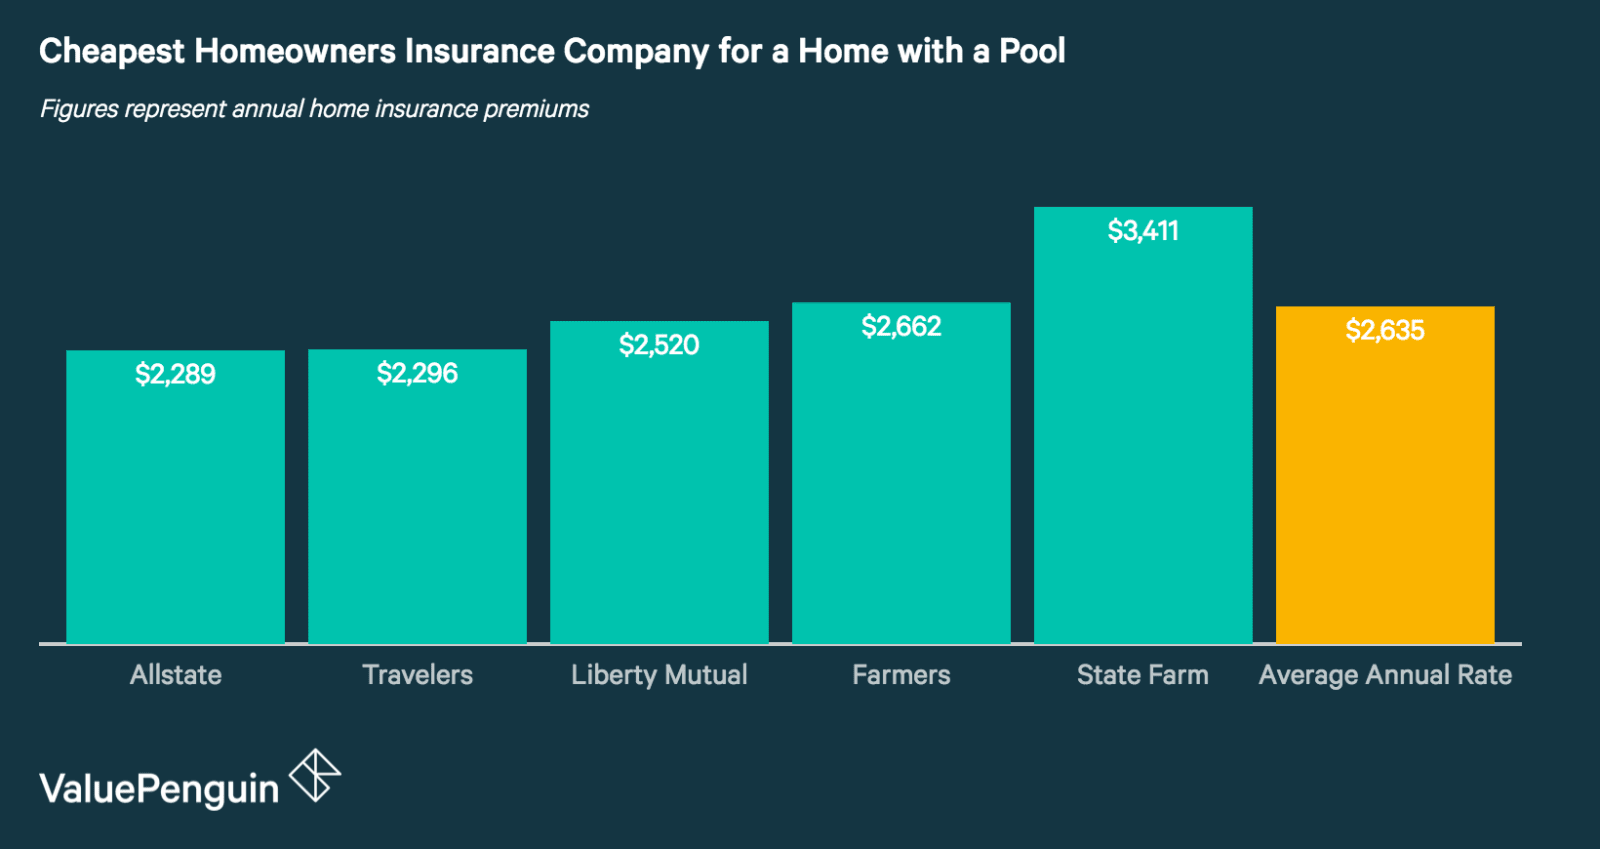 Best Homeowners Insurance Companies for Homes with Pools